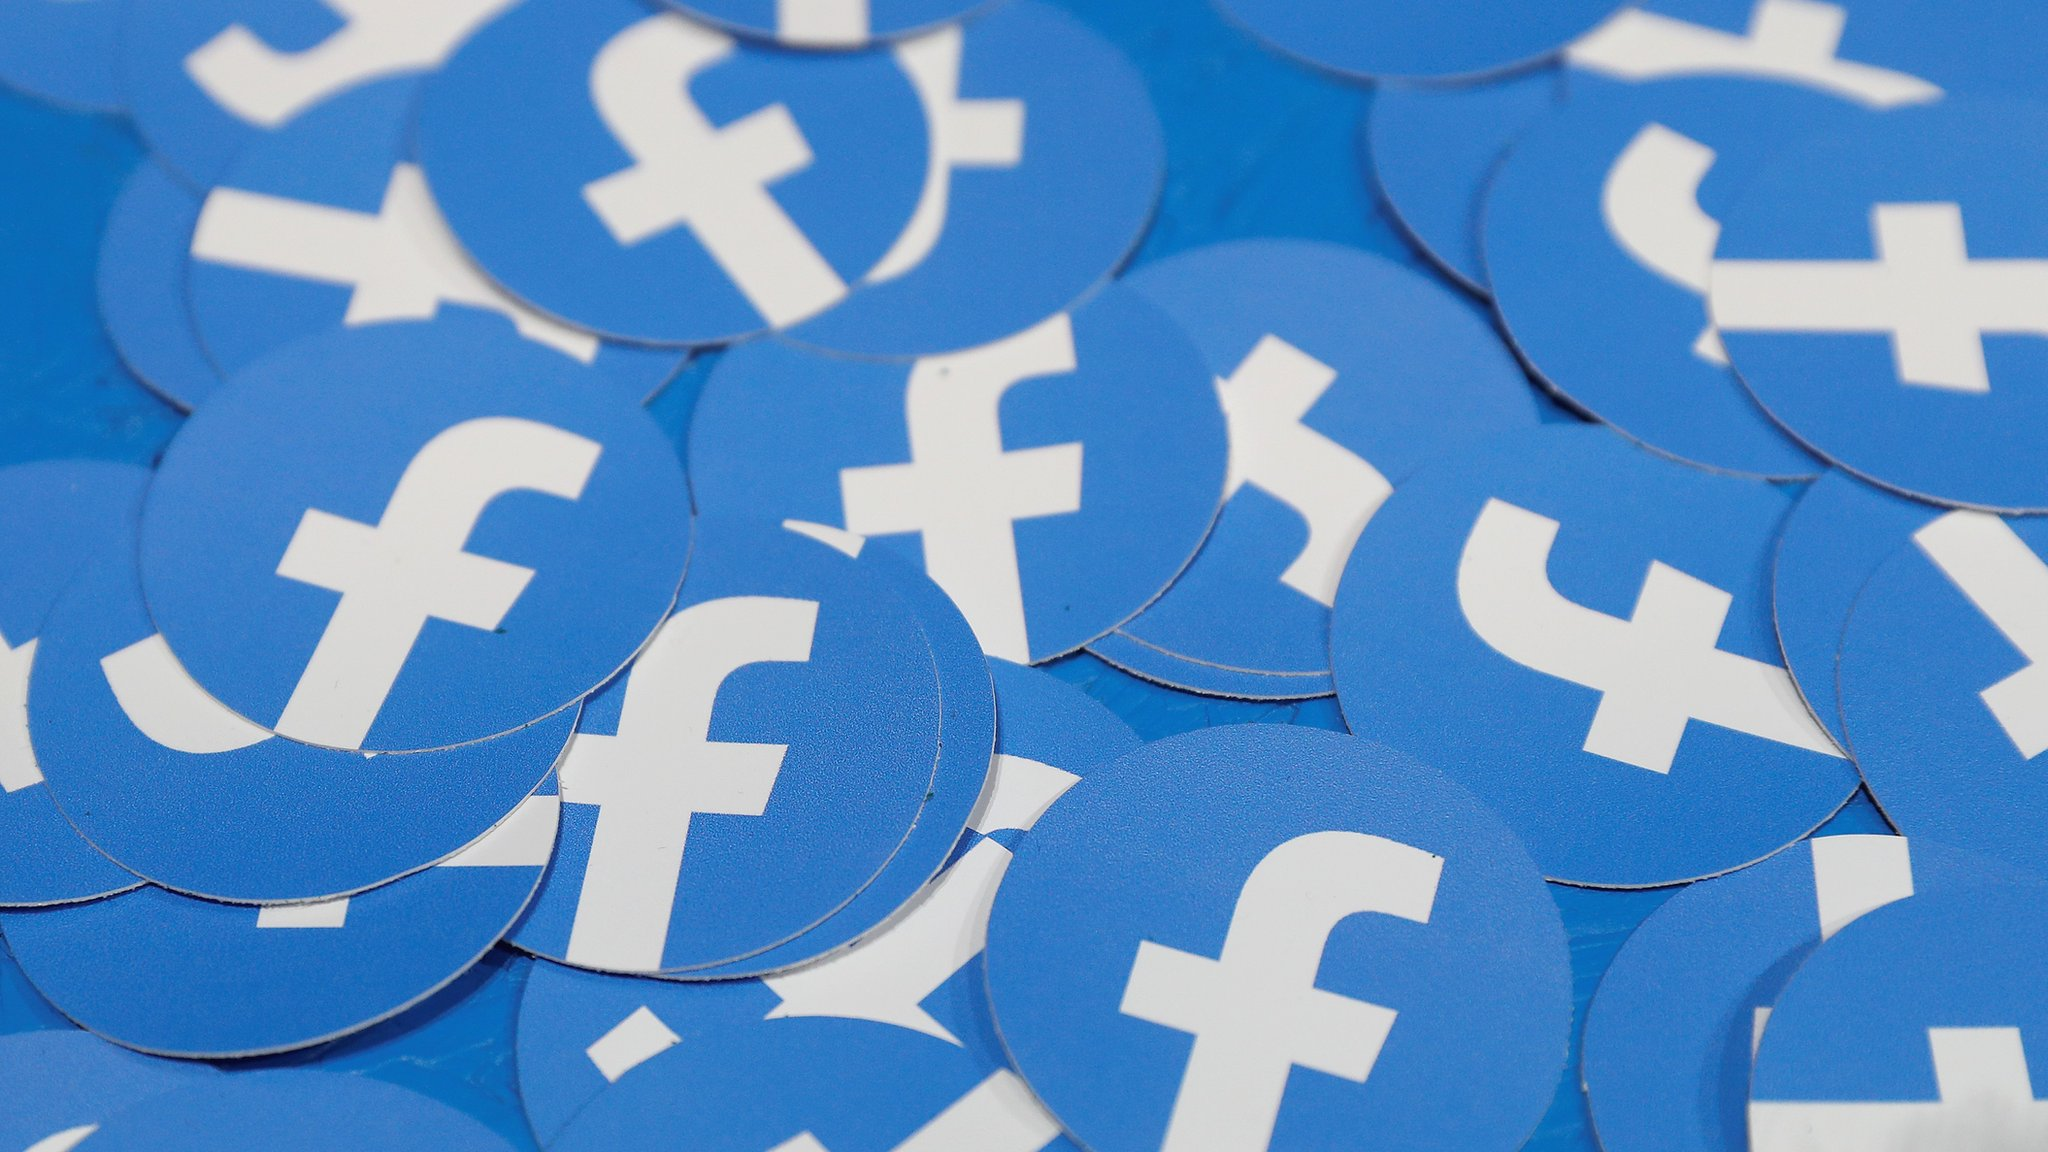 Facebook: Another three billion fake profiles culled